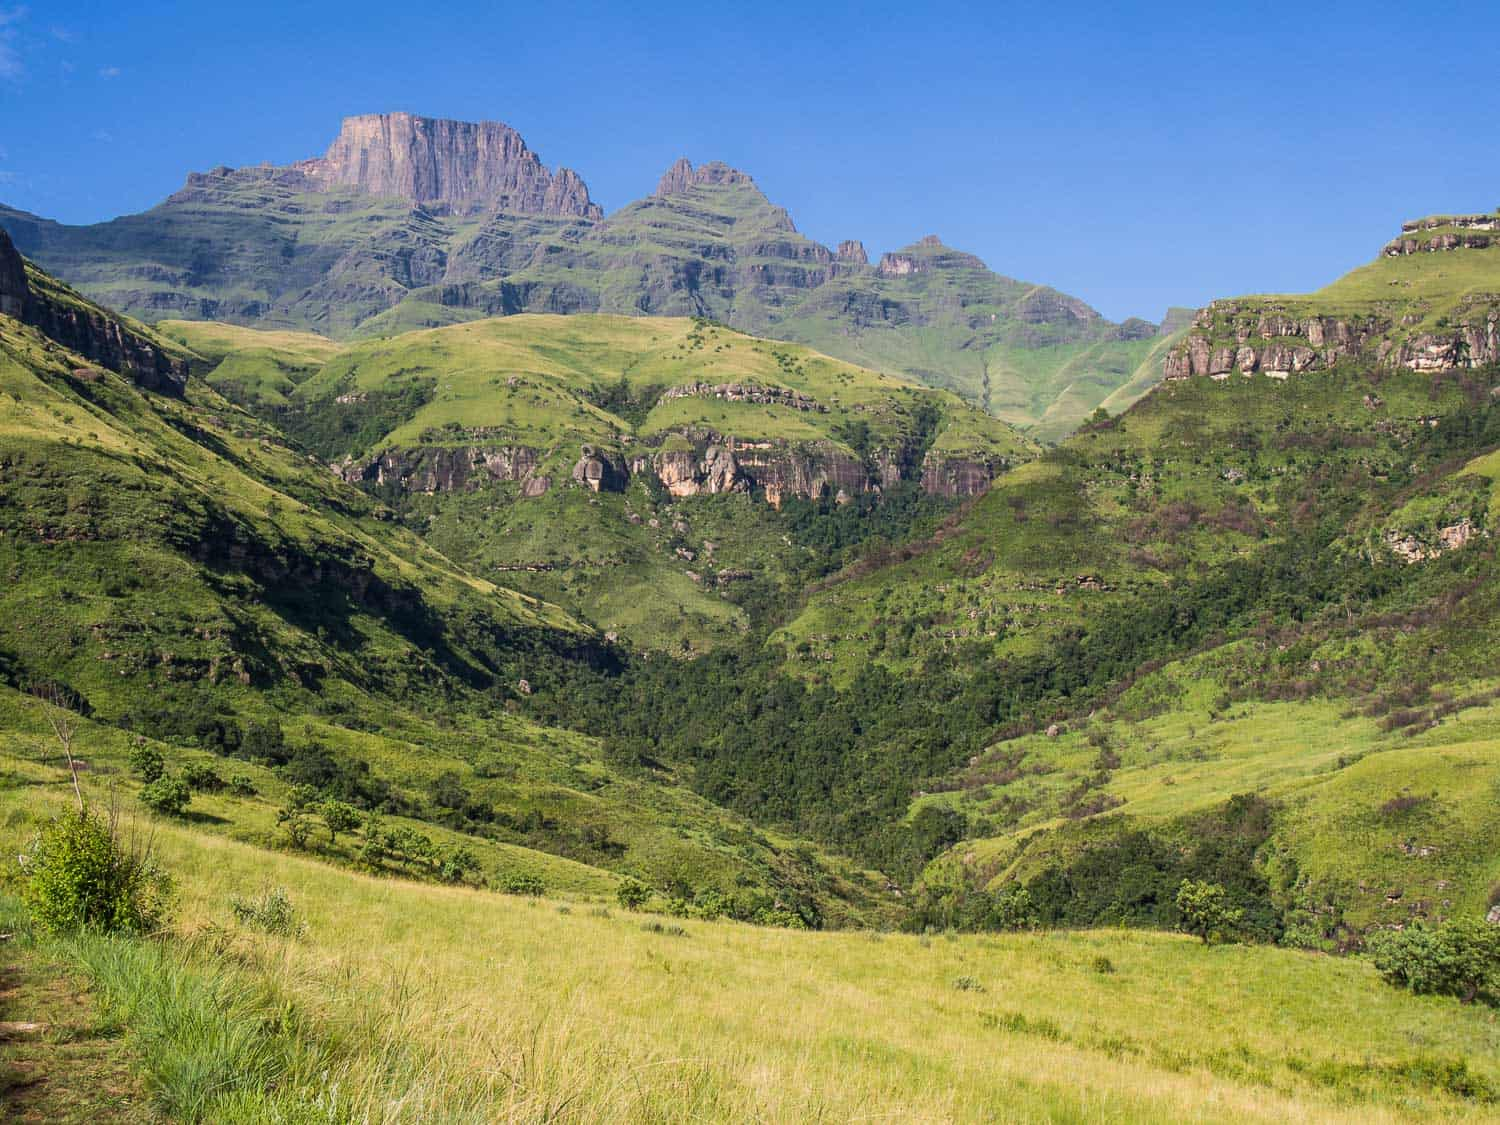 The Drakenberg mountains, one of the highlights of our South Africa road trip from Johannesburg to Cape Town